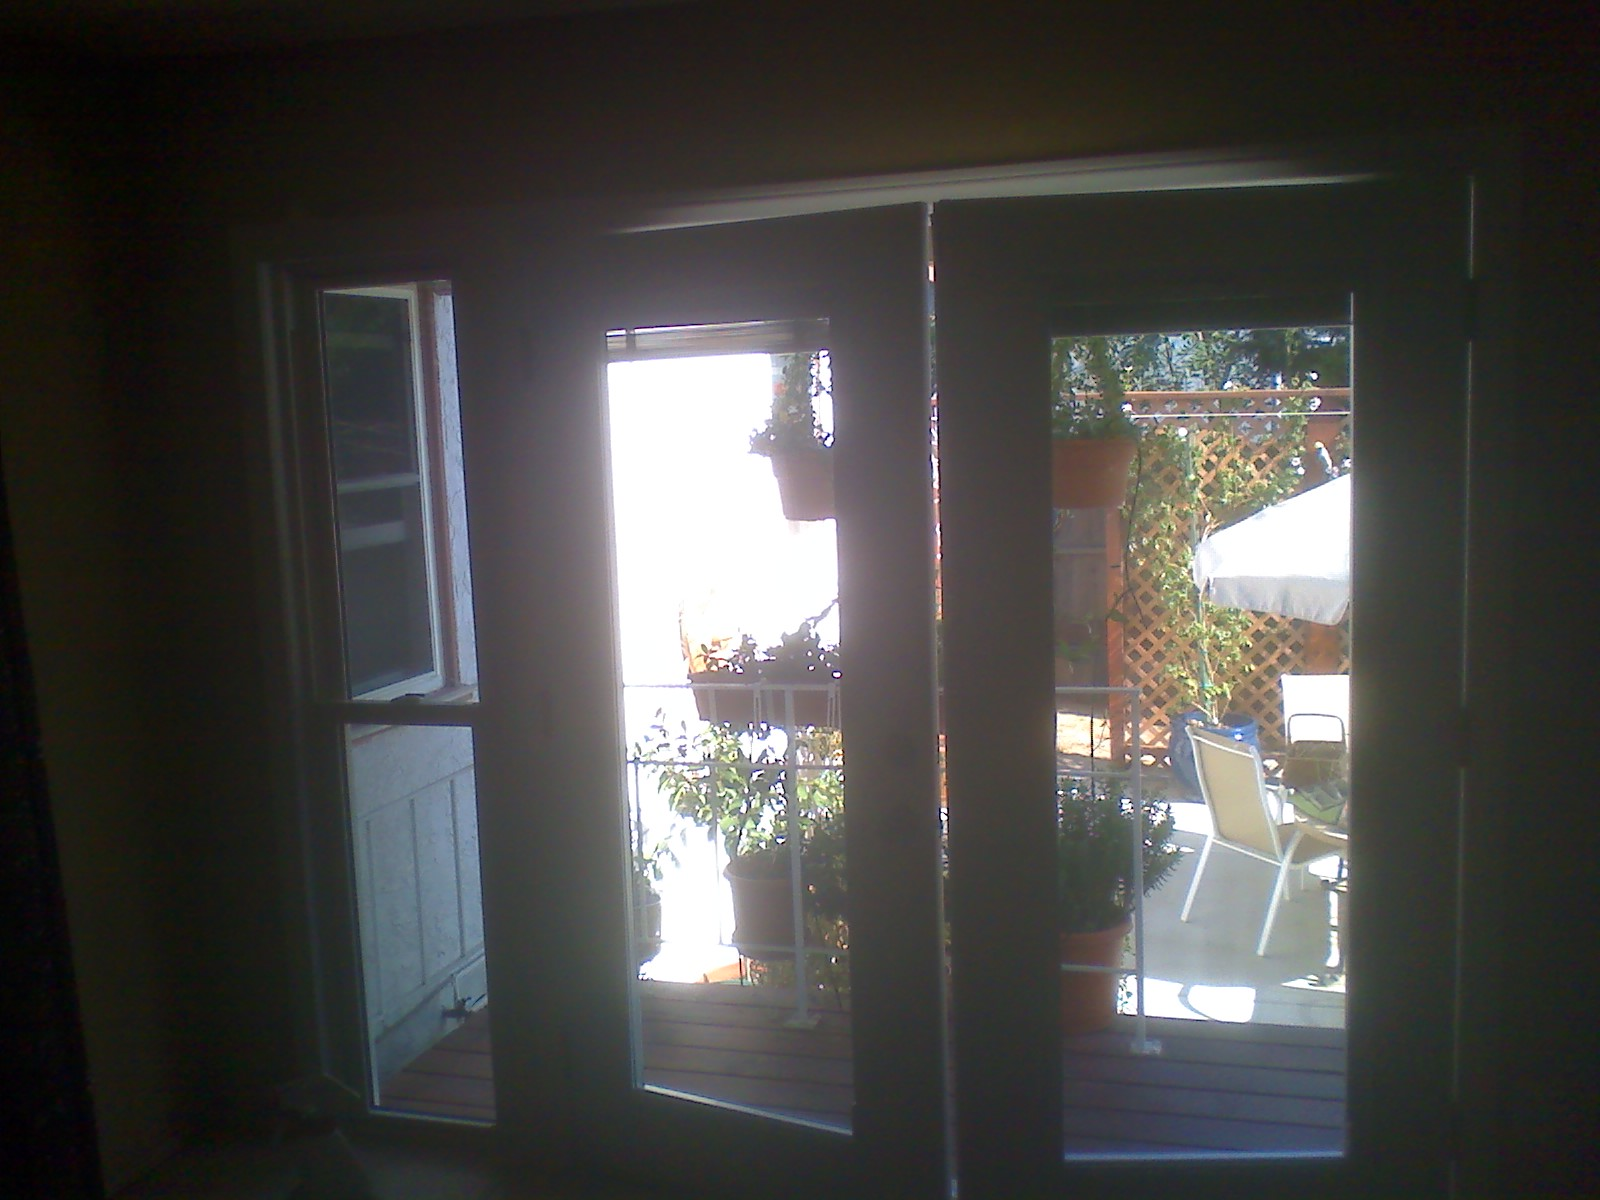 installed a double hung window on left and french swing door on right